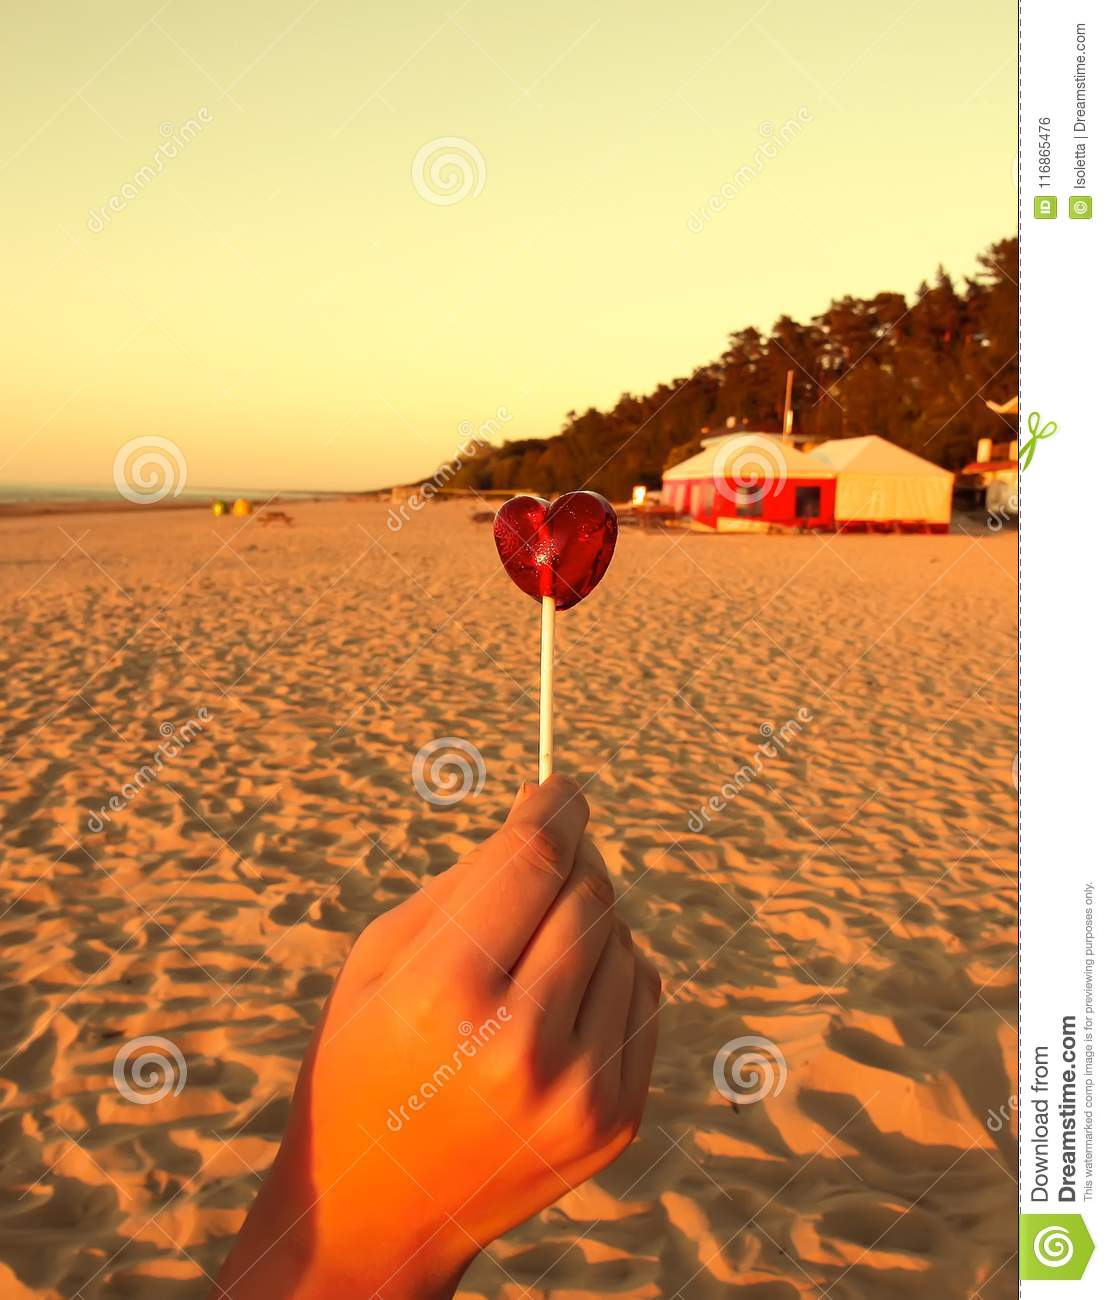 Red candy in shape of a heart in a hand on sandy beach background. Sunset warm light. Vertical shot.